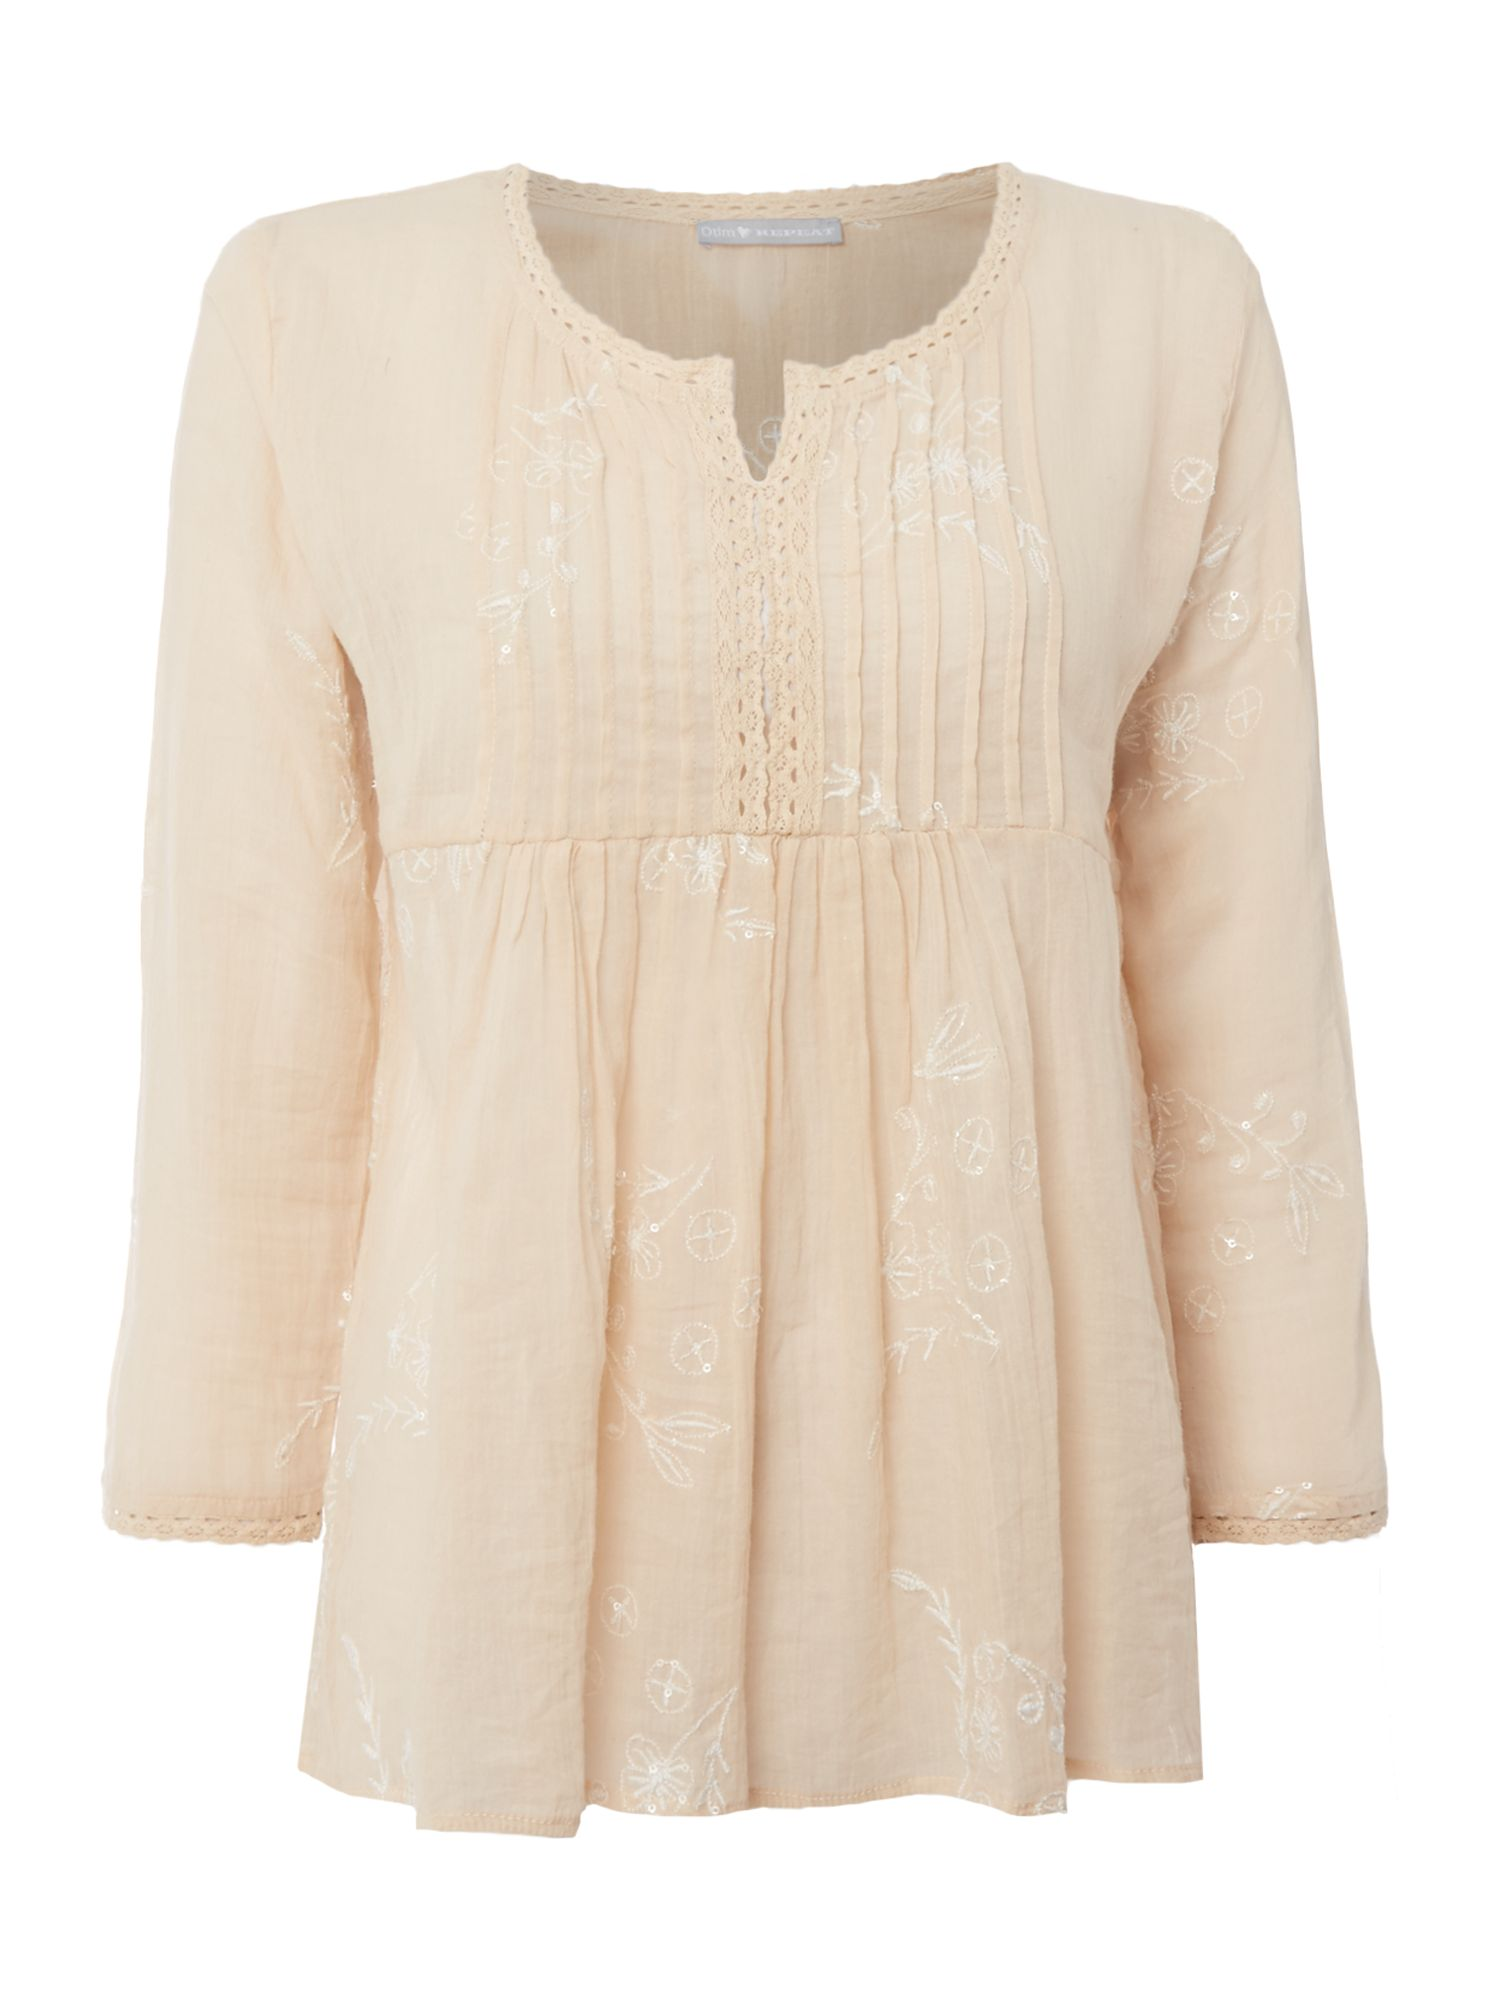 Repeat Cashmere Button up short sleeve embroidered top, Shell